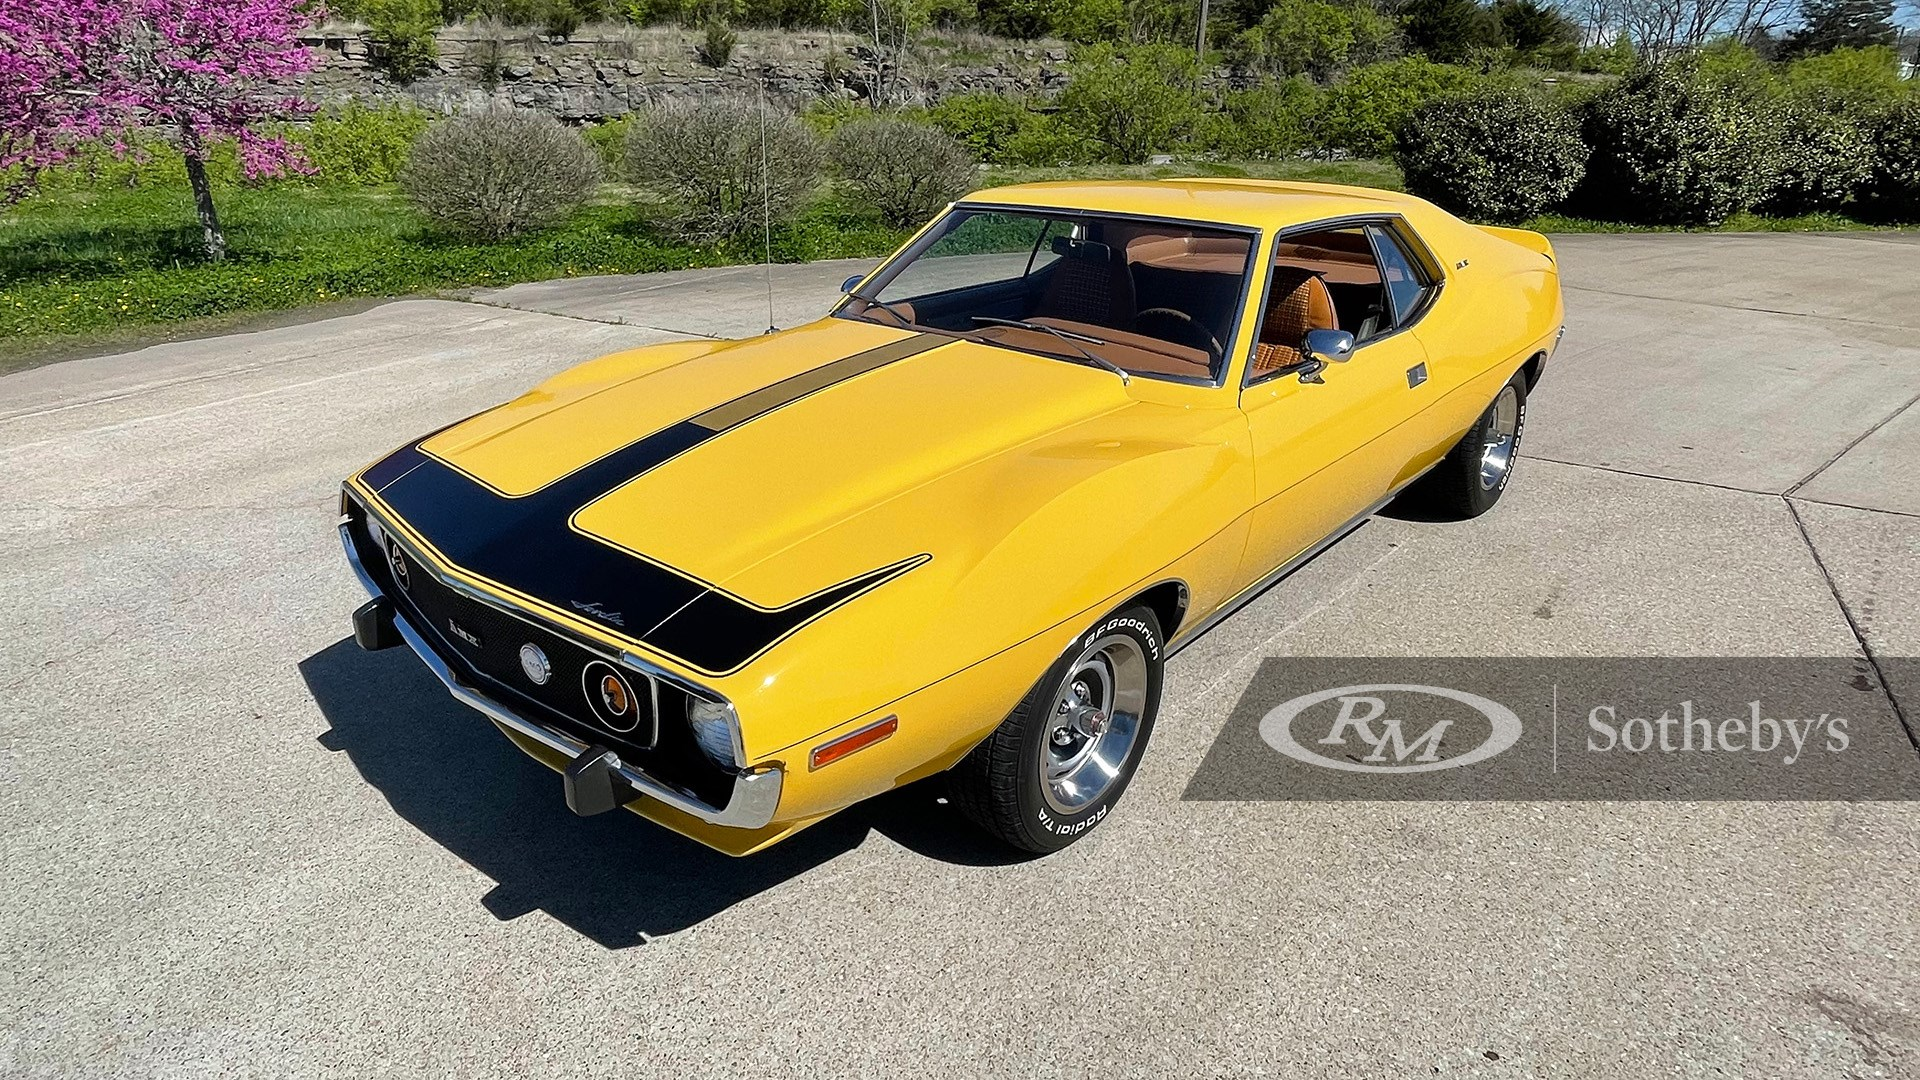 1974 AMC Javelin AMX available at RM Sotheby's Online Only Open Roads April Auction 2021